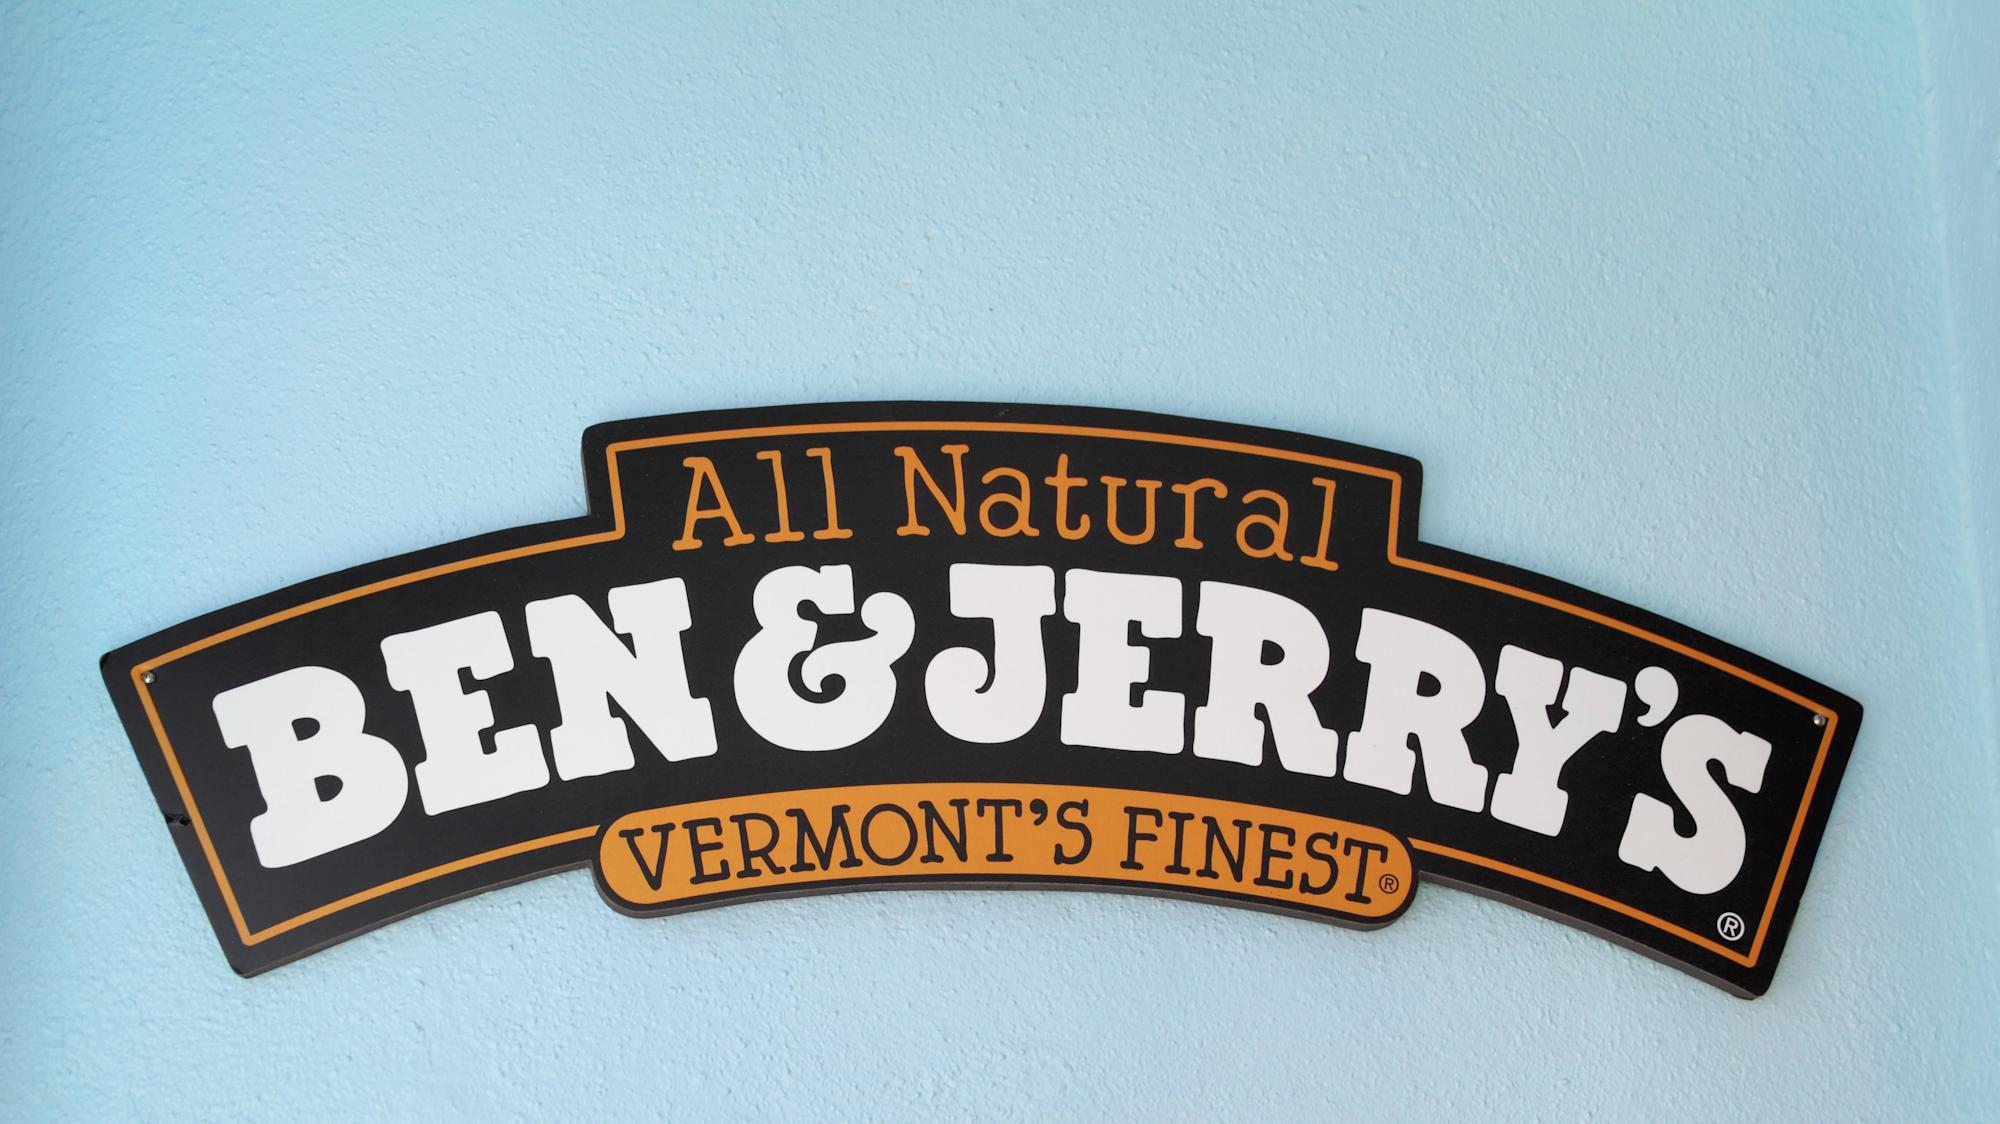 ca.finance.yahoo.com: Our fans want all kinds of ways to get Ben & Jerry's euphoric flavors and that includes vegan and non-dairy: Ben & Jerry's CEO